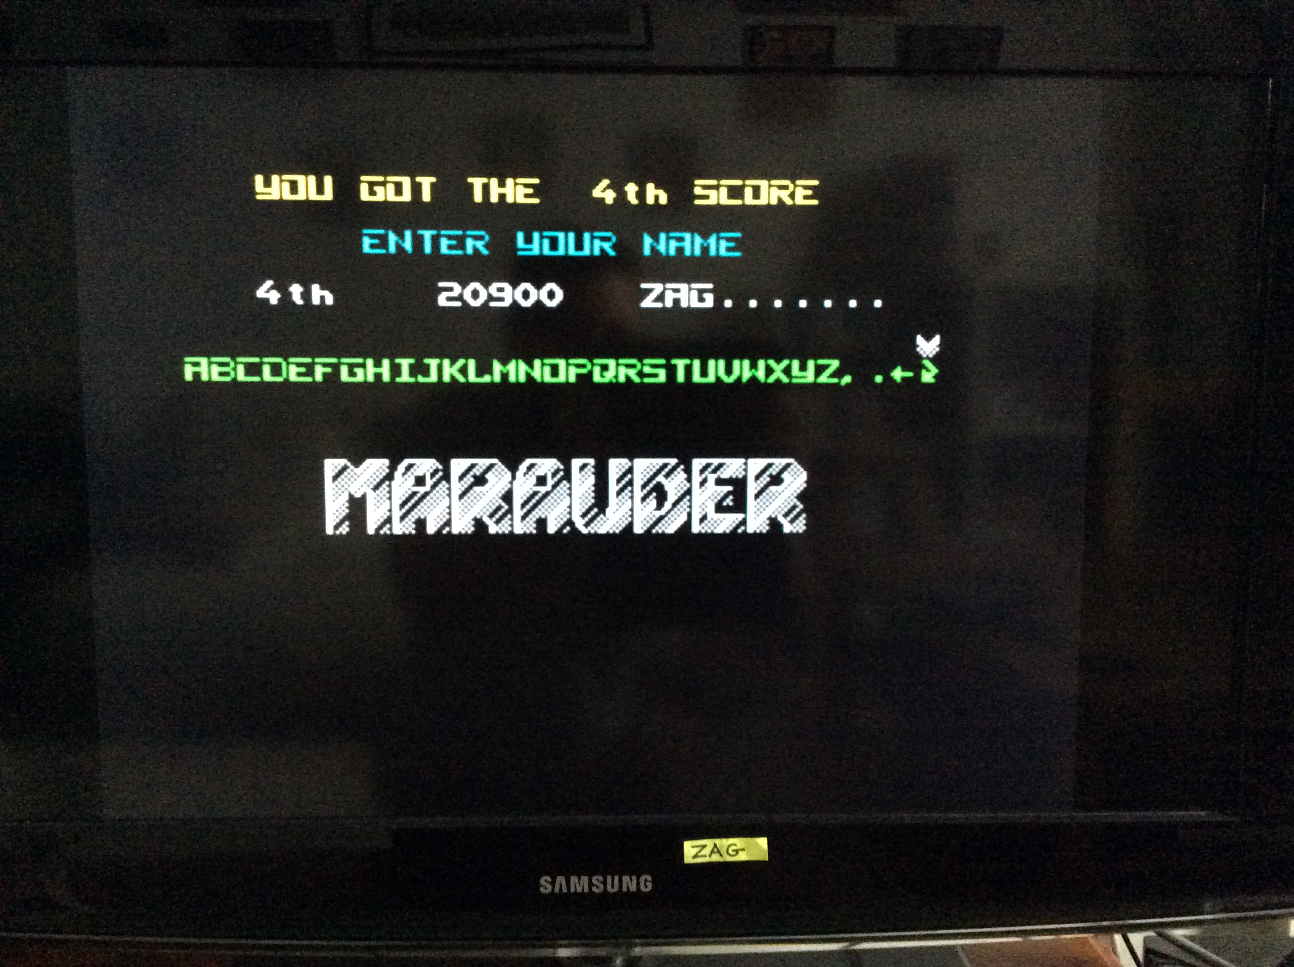 Zagrebista: Marauder (ZX Spectrum Emulated) 20,900 points on 2017-02-12 08:38:14